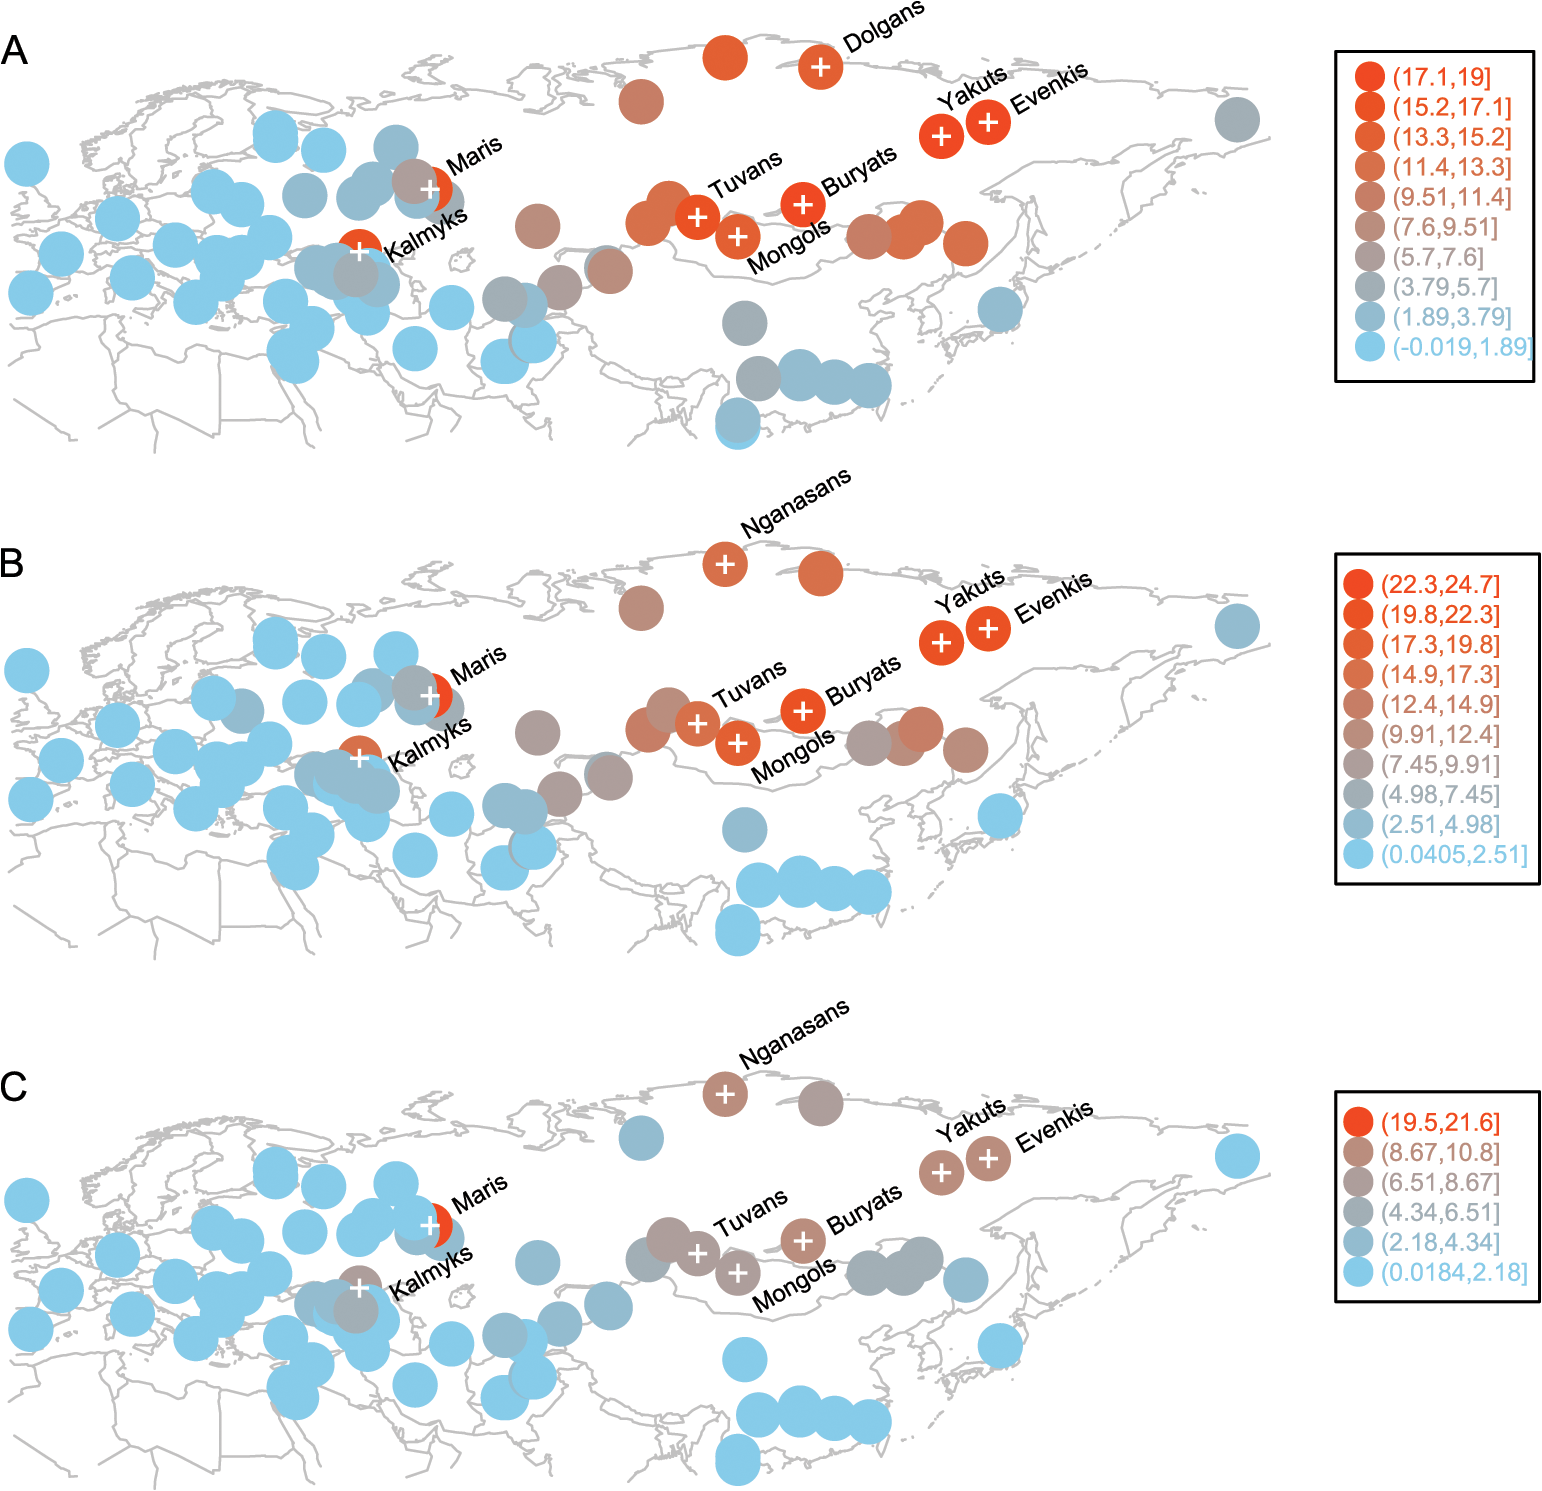 Populations with high and correlated signals of IBD sharing with western Turkic peoples.